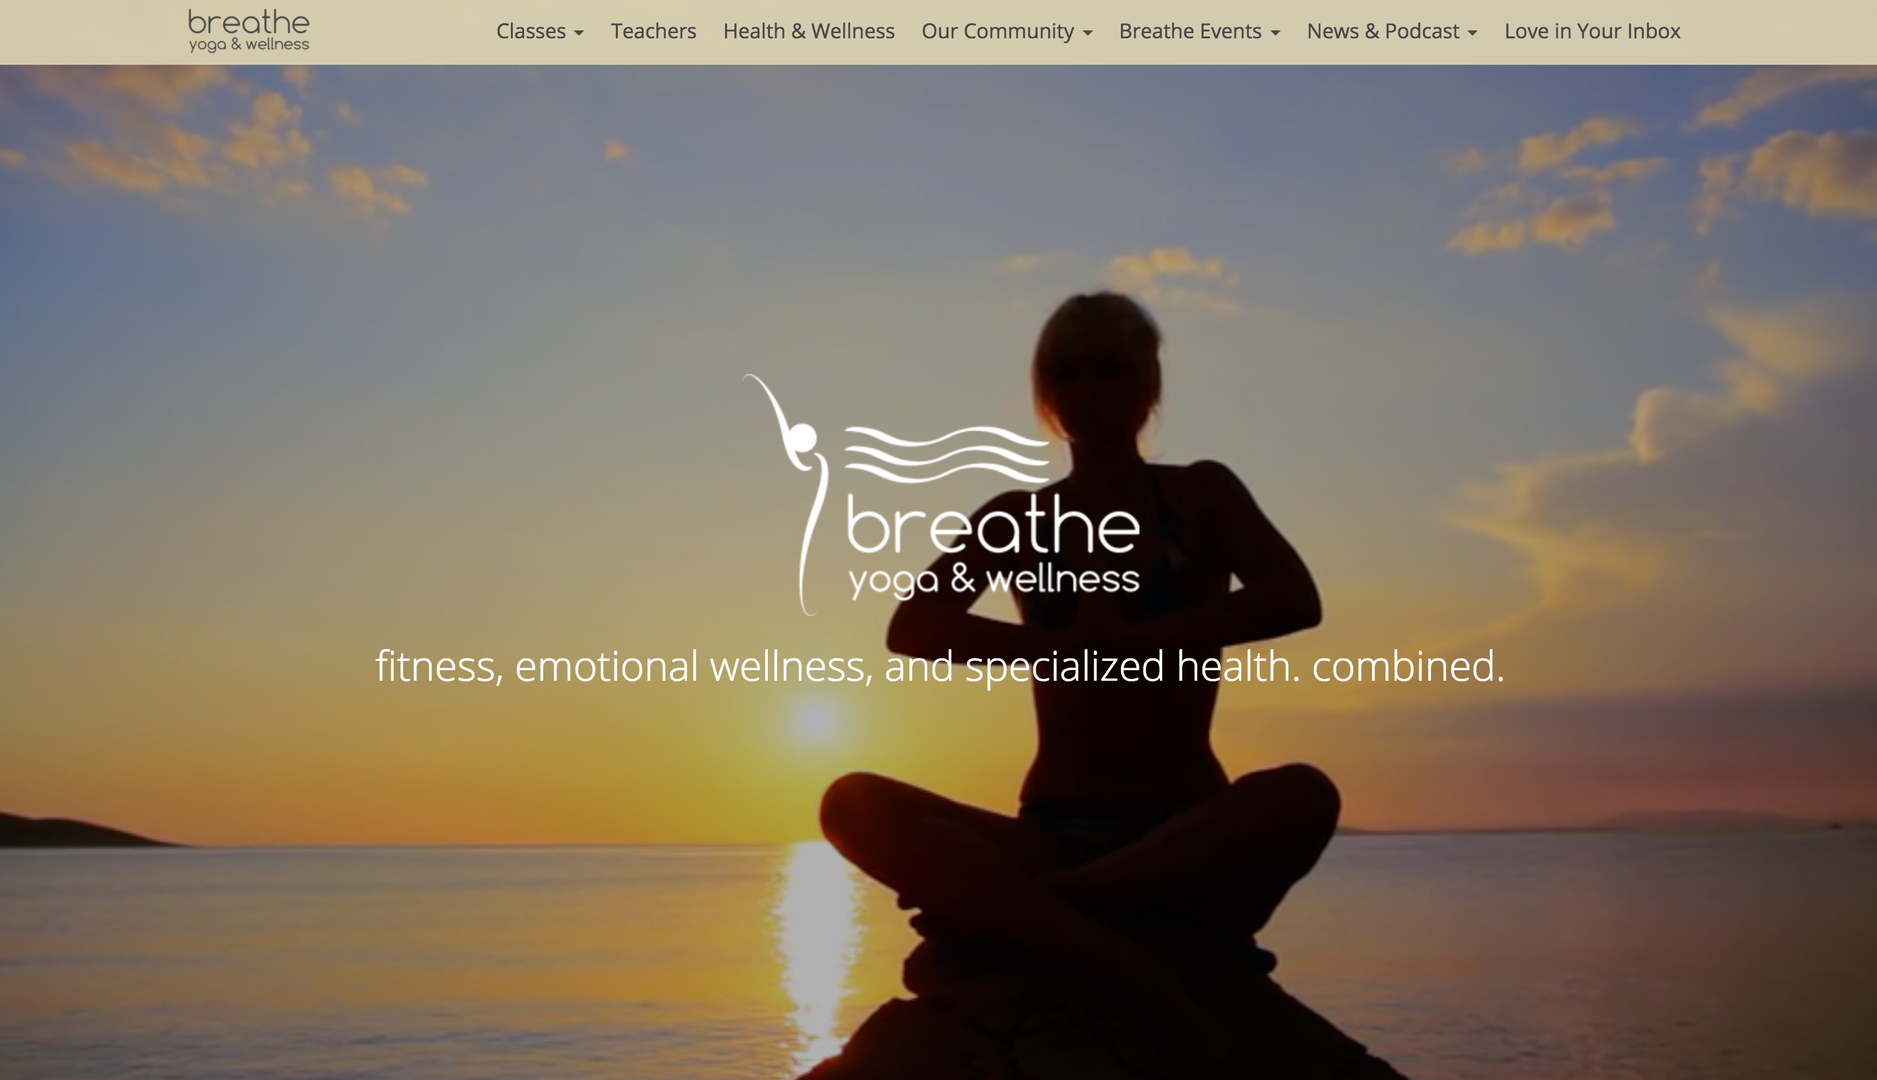 Breathe Yoga Wellness website homepage